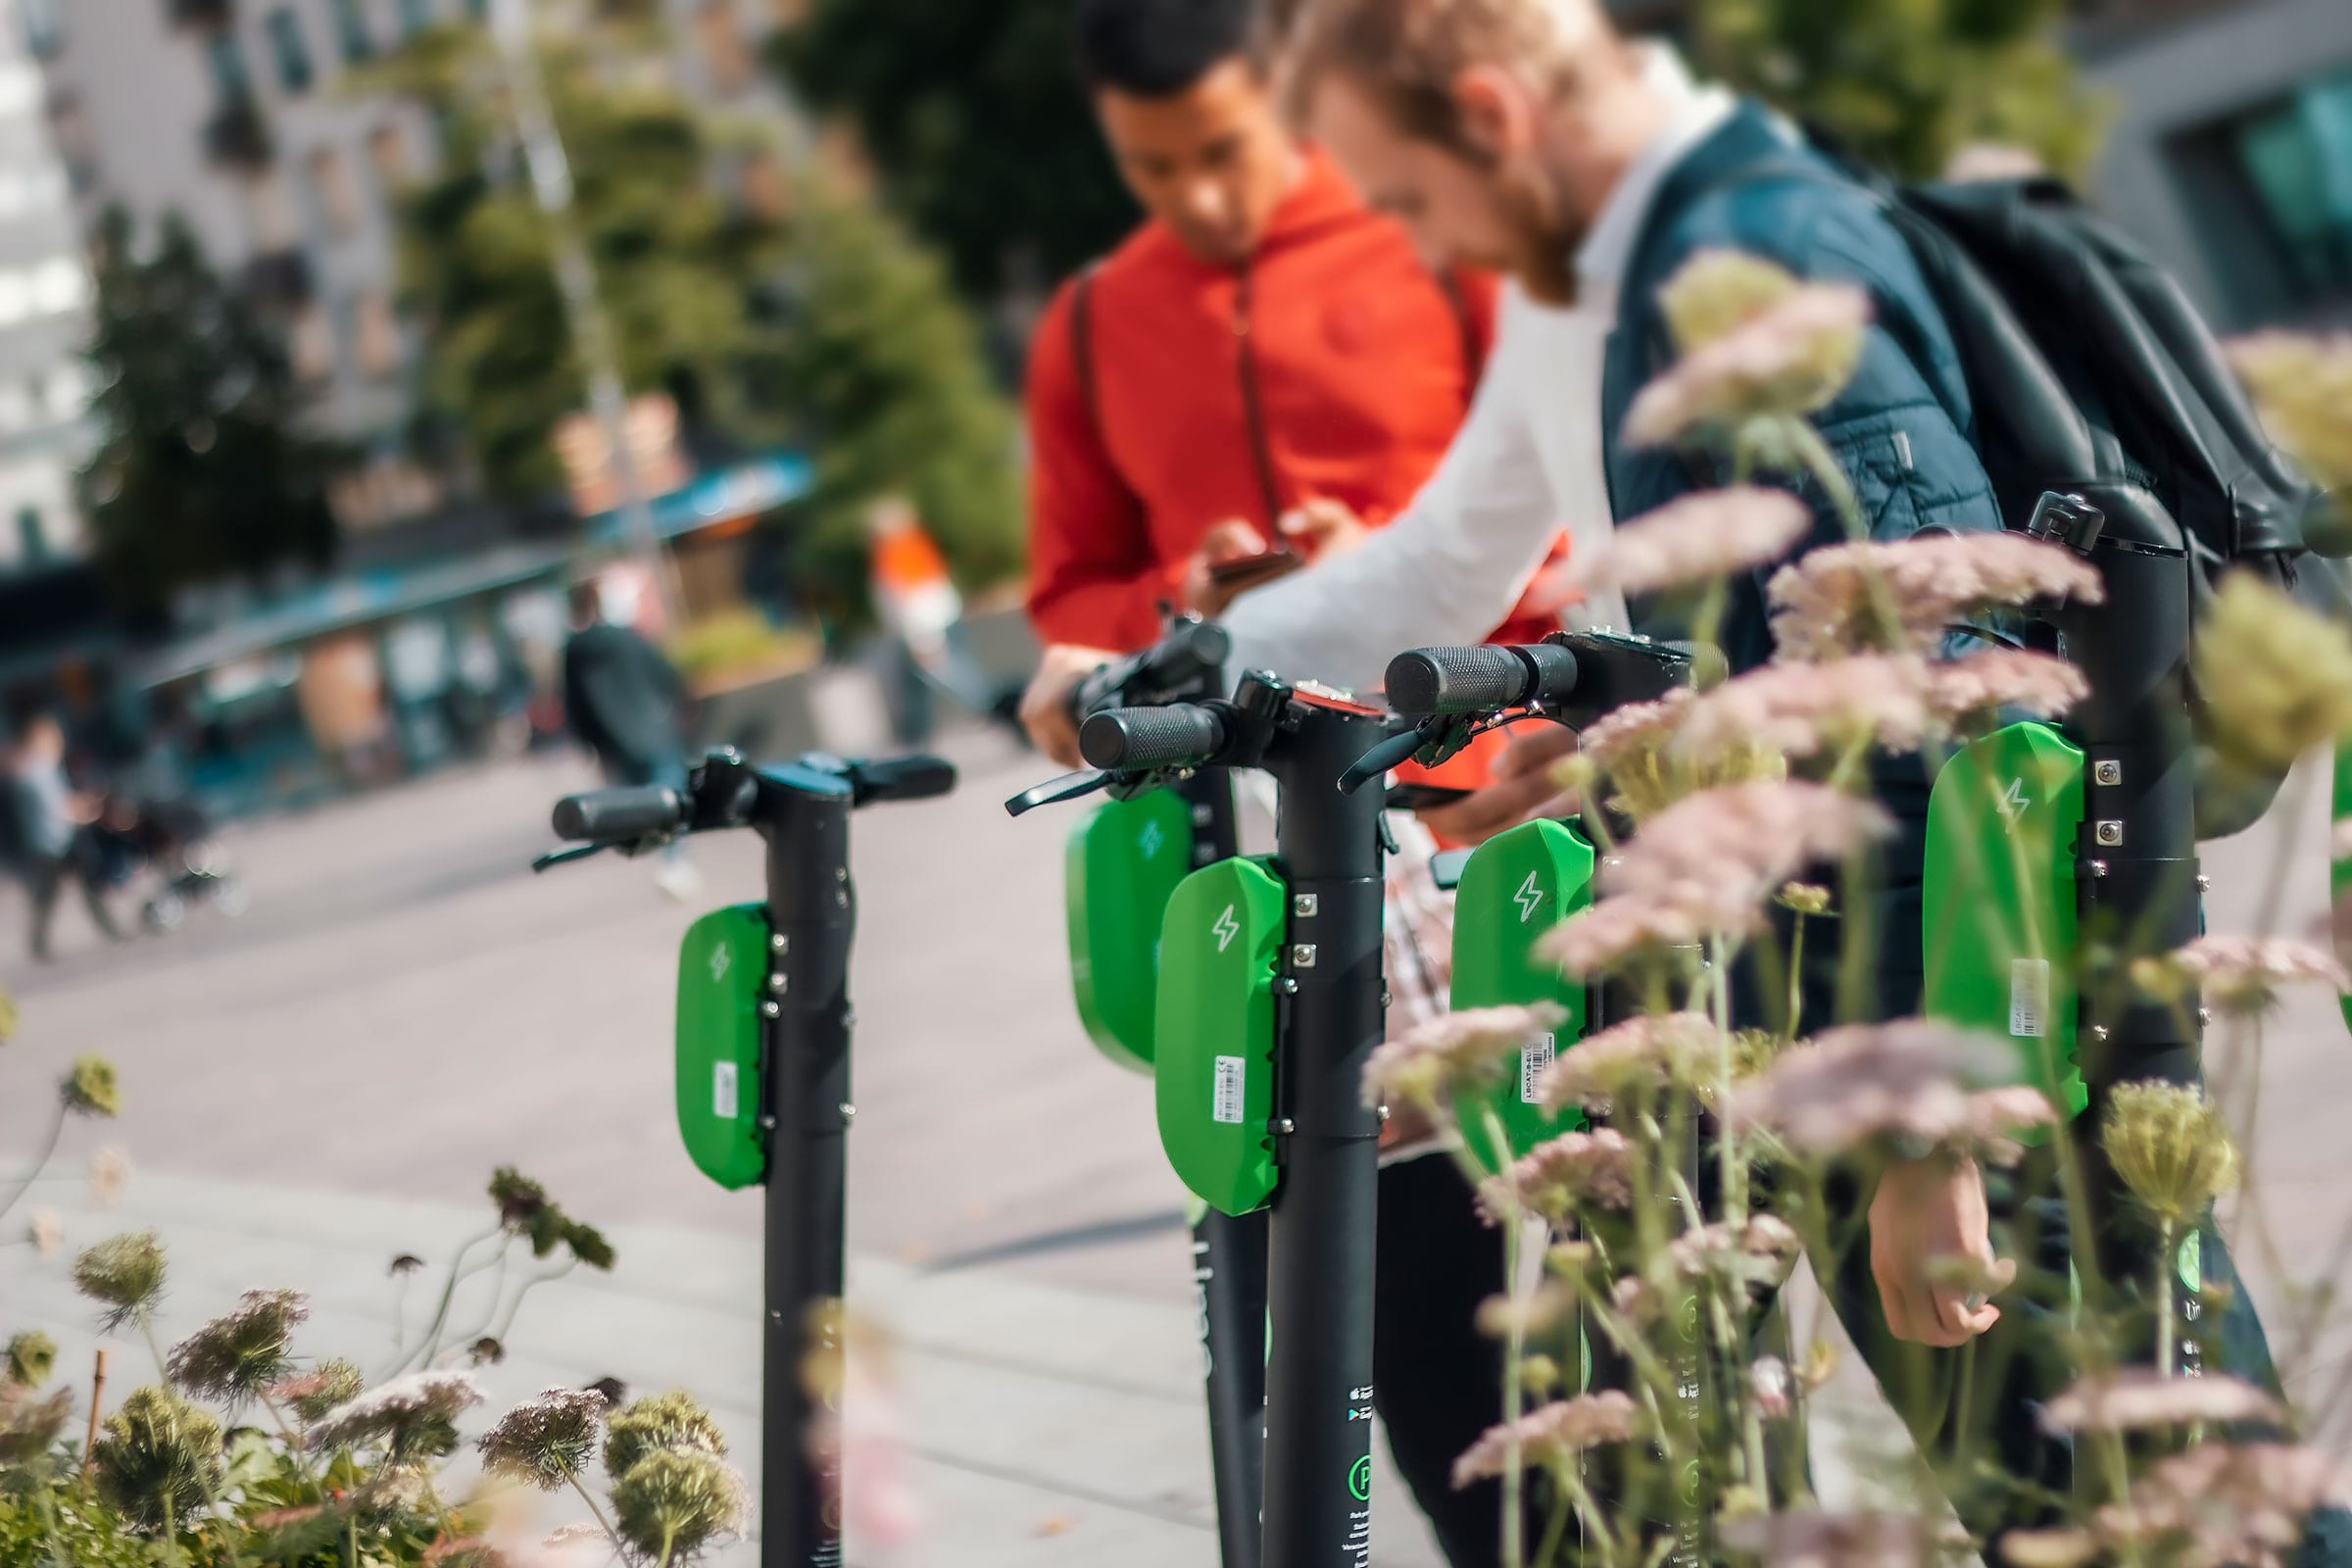 Getting around Gothenburg - how to hire an electric scooter